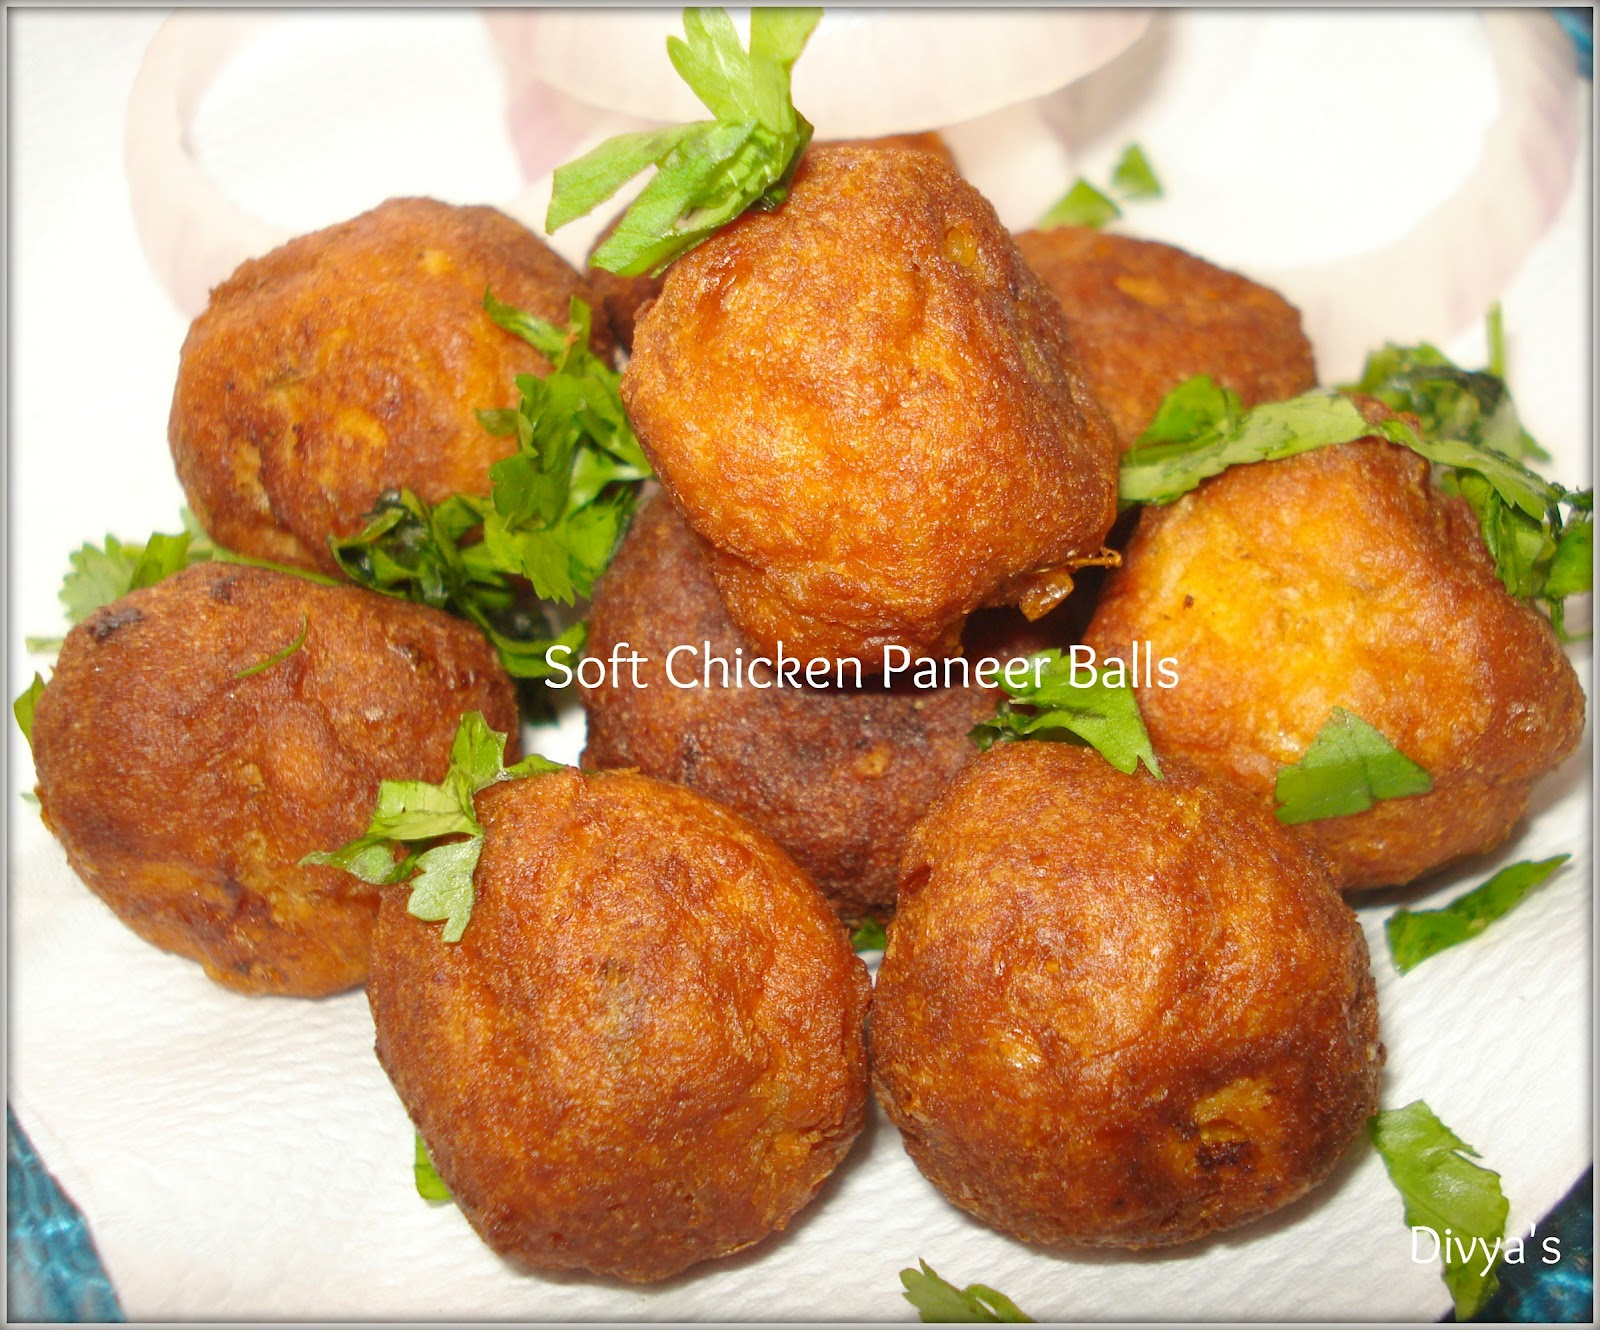 Download this Soft Chicken Paneer... picture